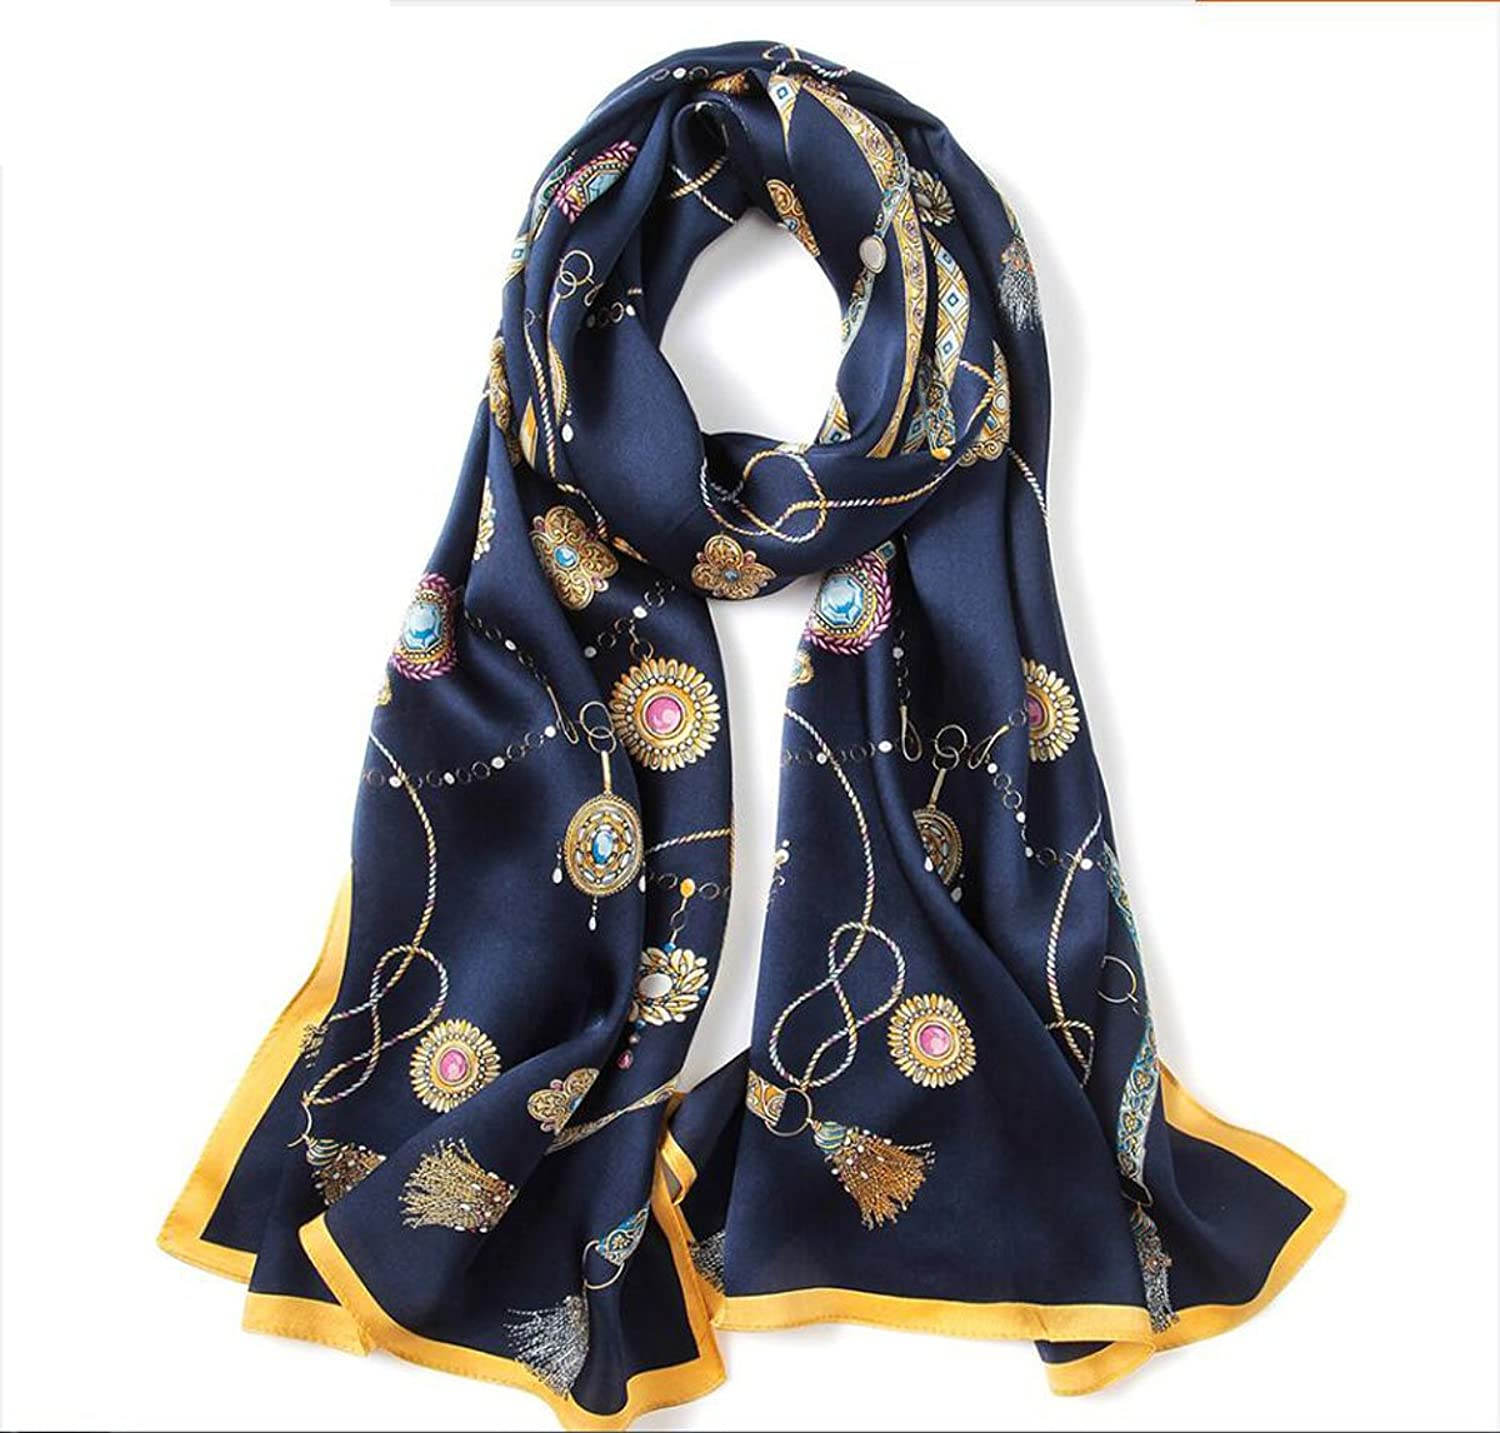 JUN Silk Scarf Printing Embroidery Embroidered Silk Scarf Women 100% Silk Four Seasons Long Style Wild Sunscreen Shawls Beach Towels (Length  170  53cm, Packing of 1) (color   E)